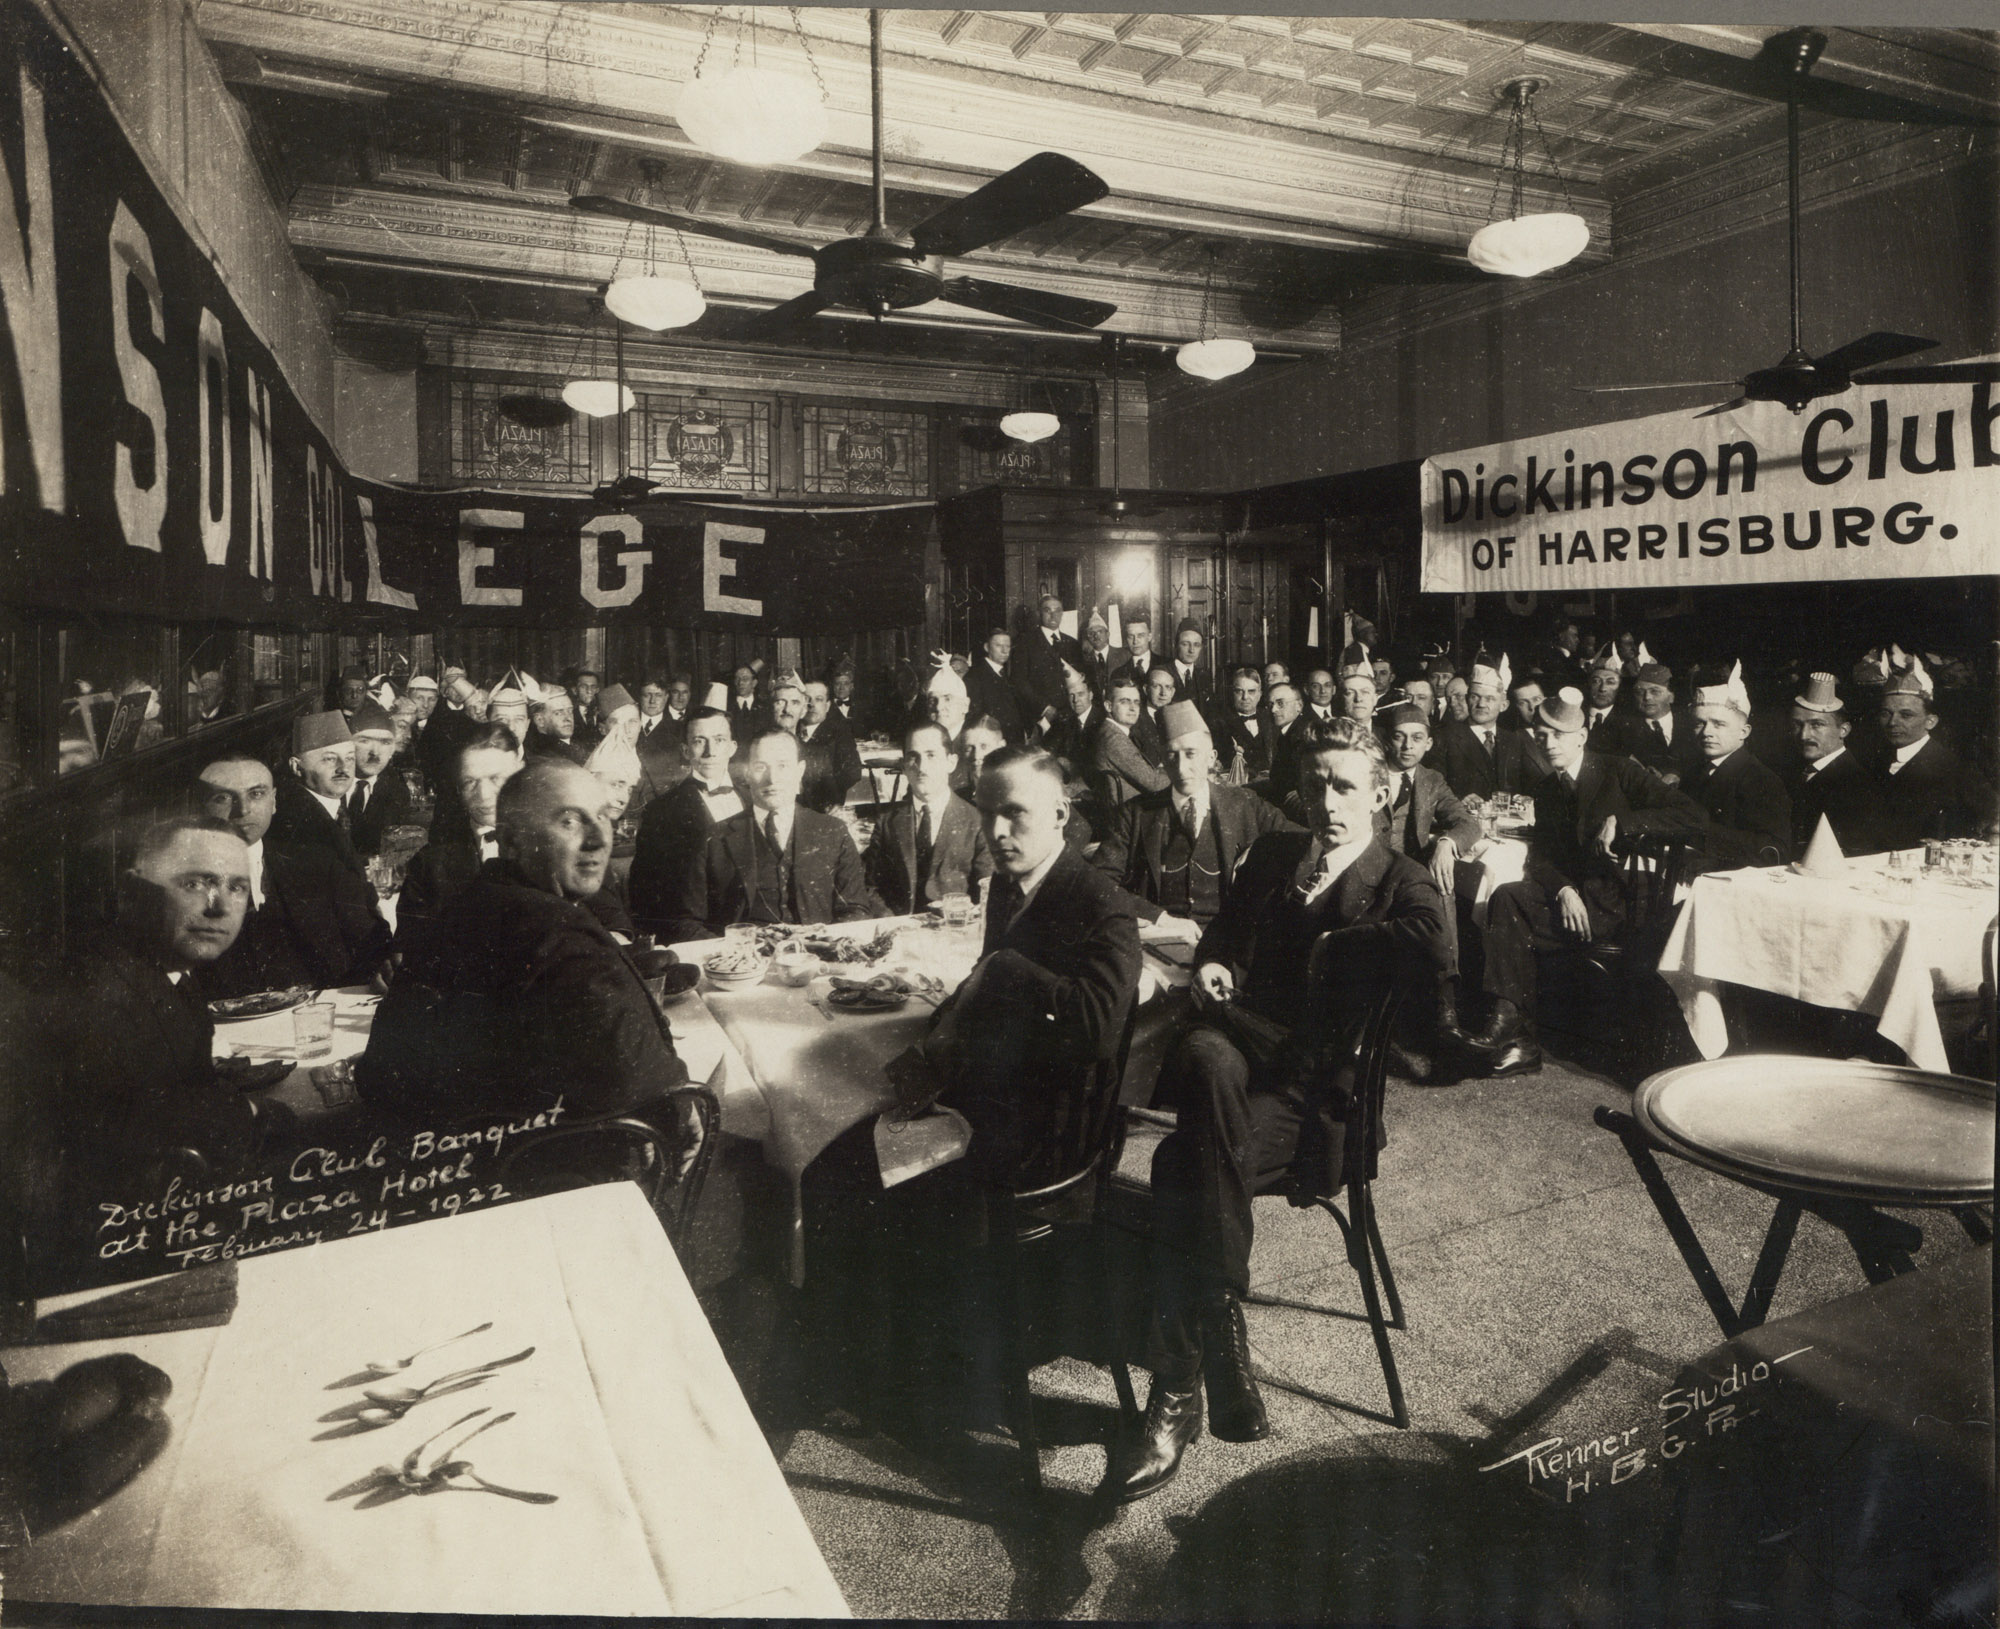 Dickinson Club of Harrisburg banquet, 1922